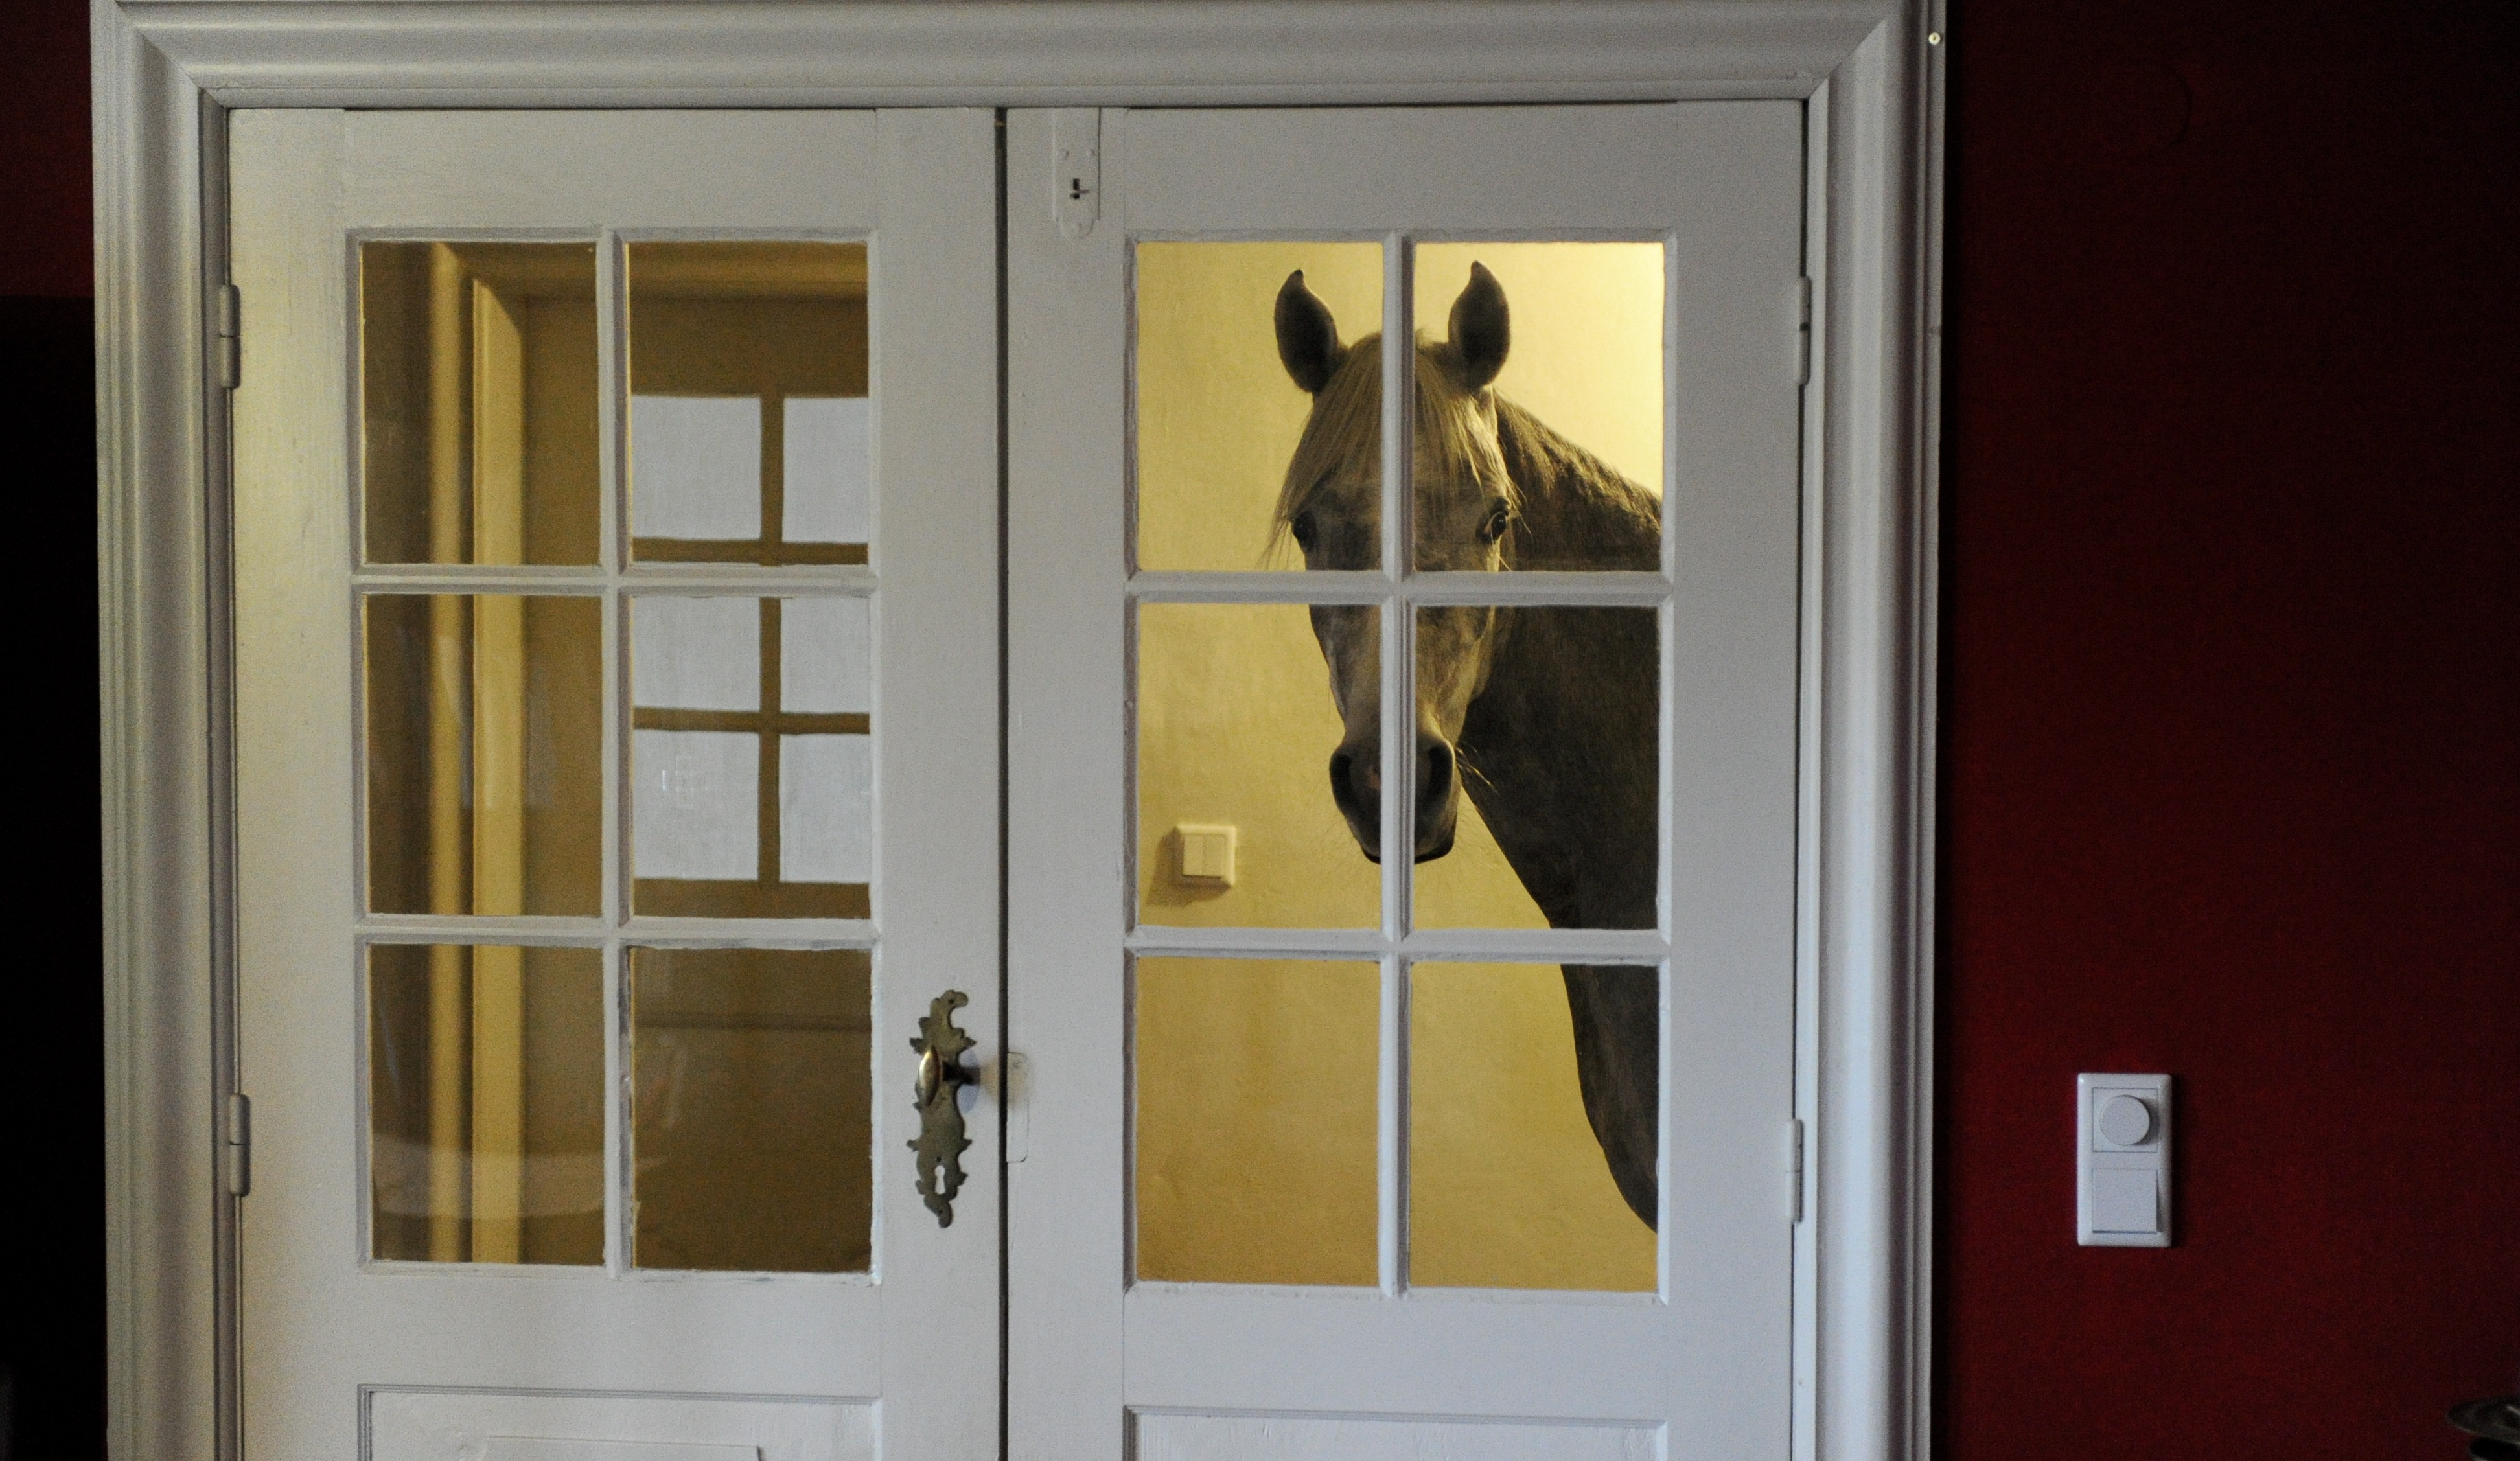 Three-year-old Arabian horse Nasar stands in front of the living room door, Feb. 10, 2014. After a powerful storm swept through northern Germany in December, Stephanie Arndt brought her horse Nasar inside. Since then, the horse has grown very comfortable and stays indoors.